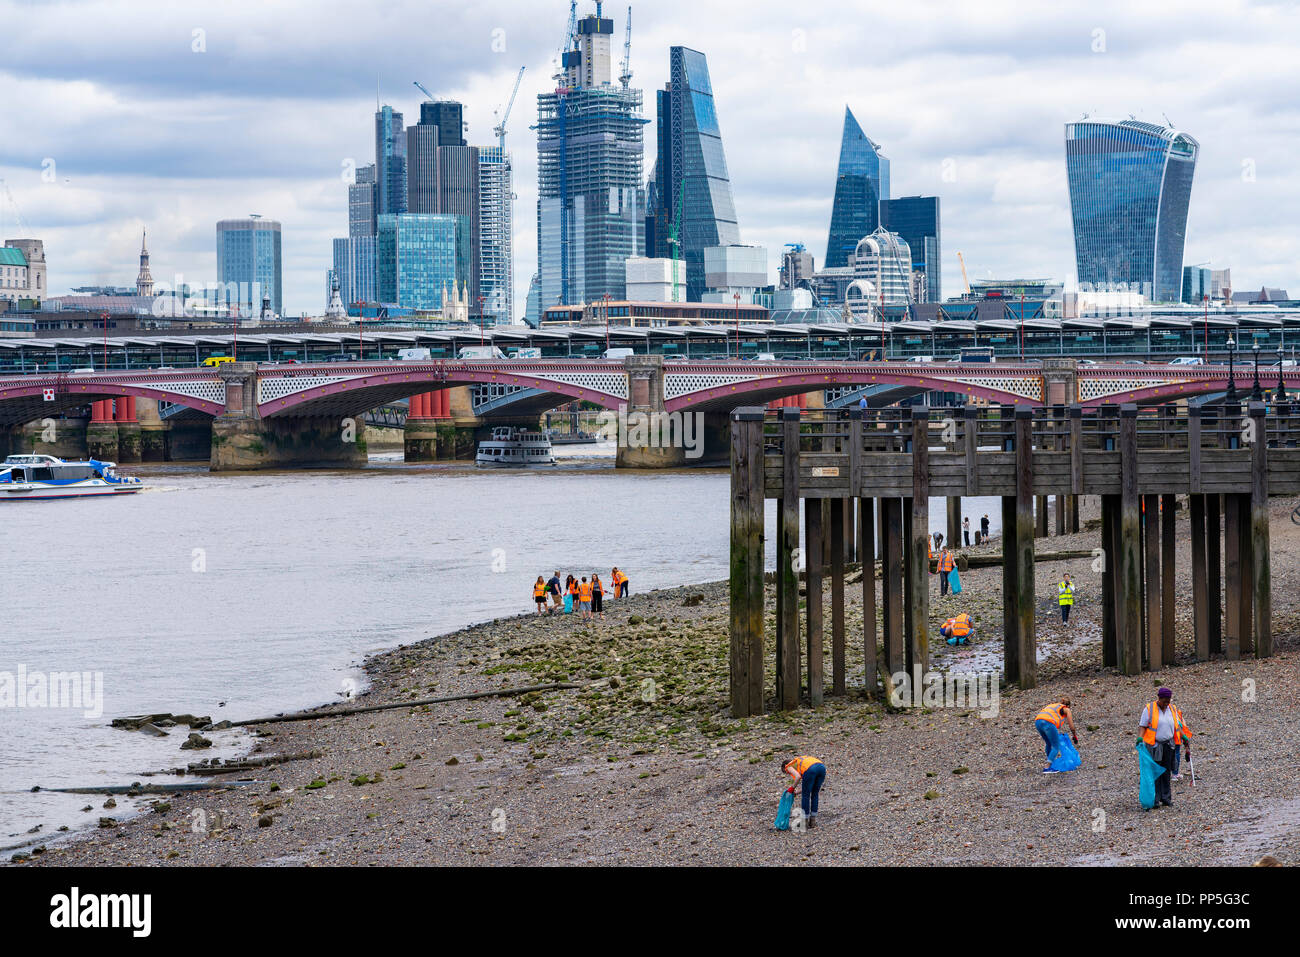 Volunteers cleaning the shores of the Thames from waste during low tide, Southbank, London - Stock Image